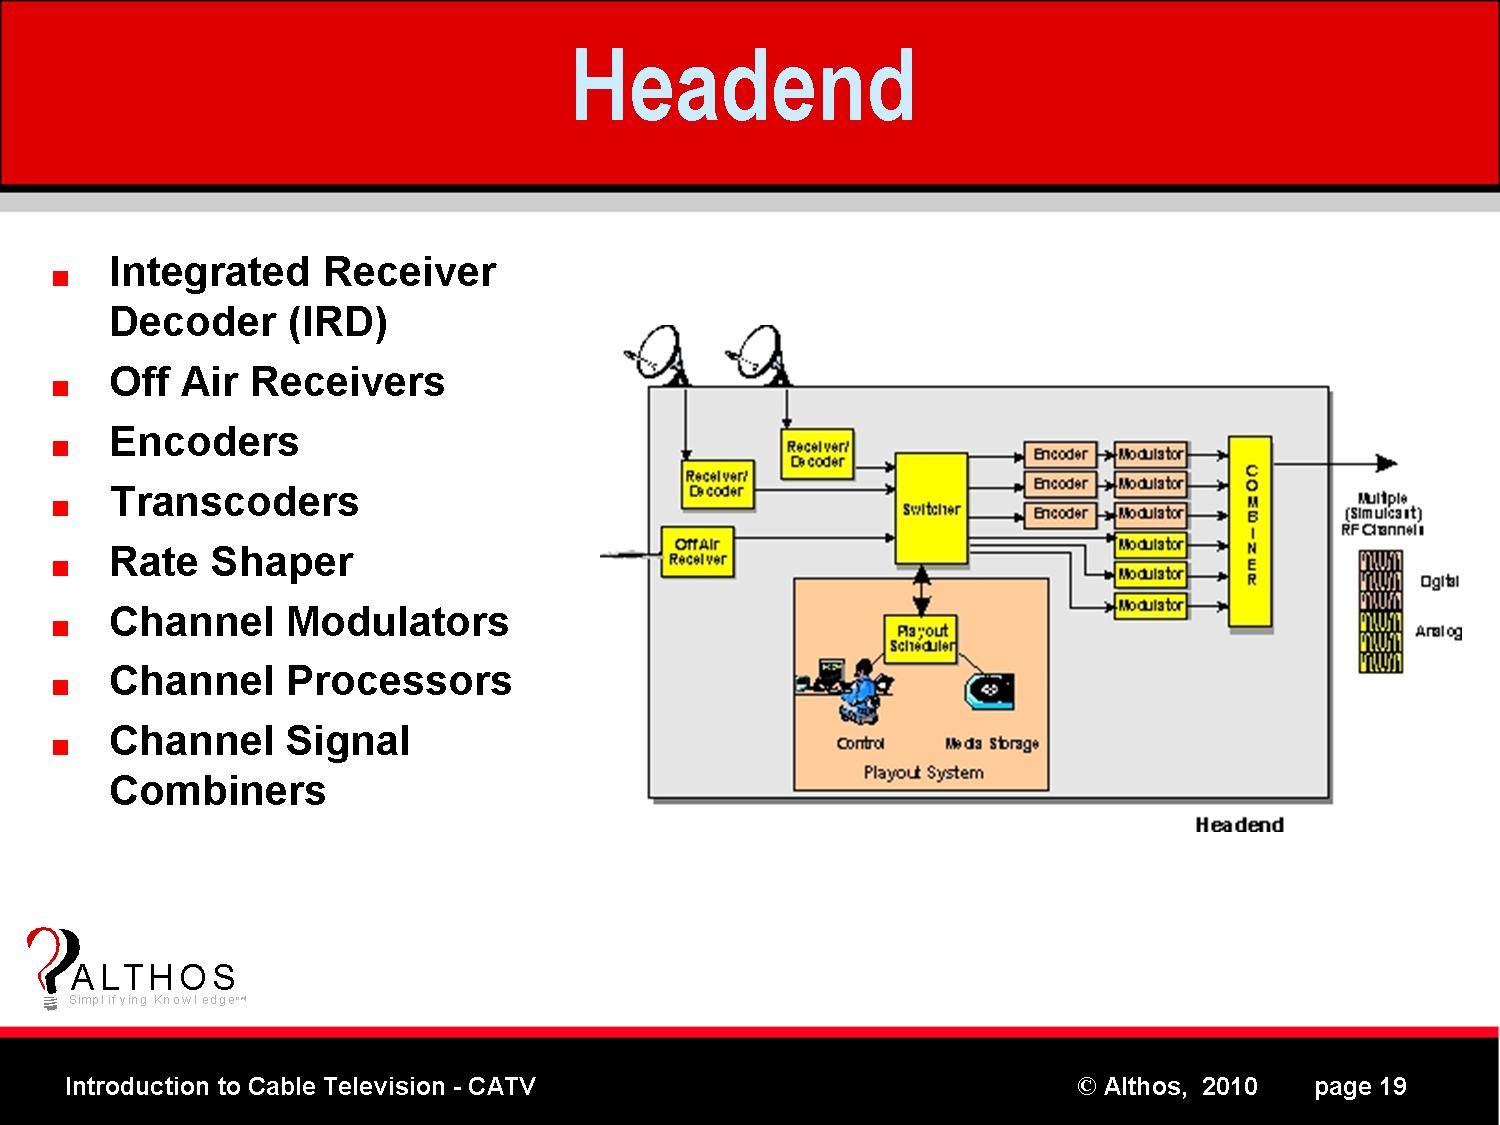 introduction to catv | headend, Wiring block